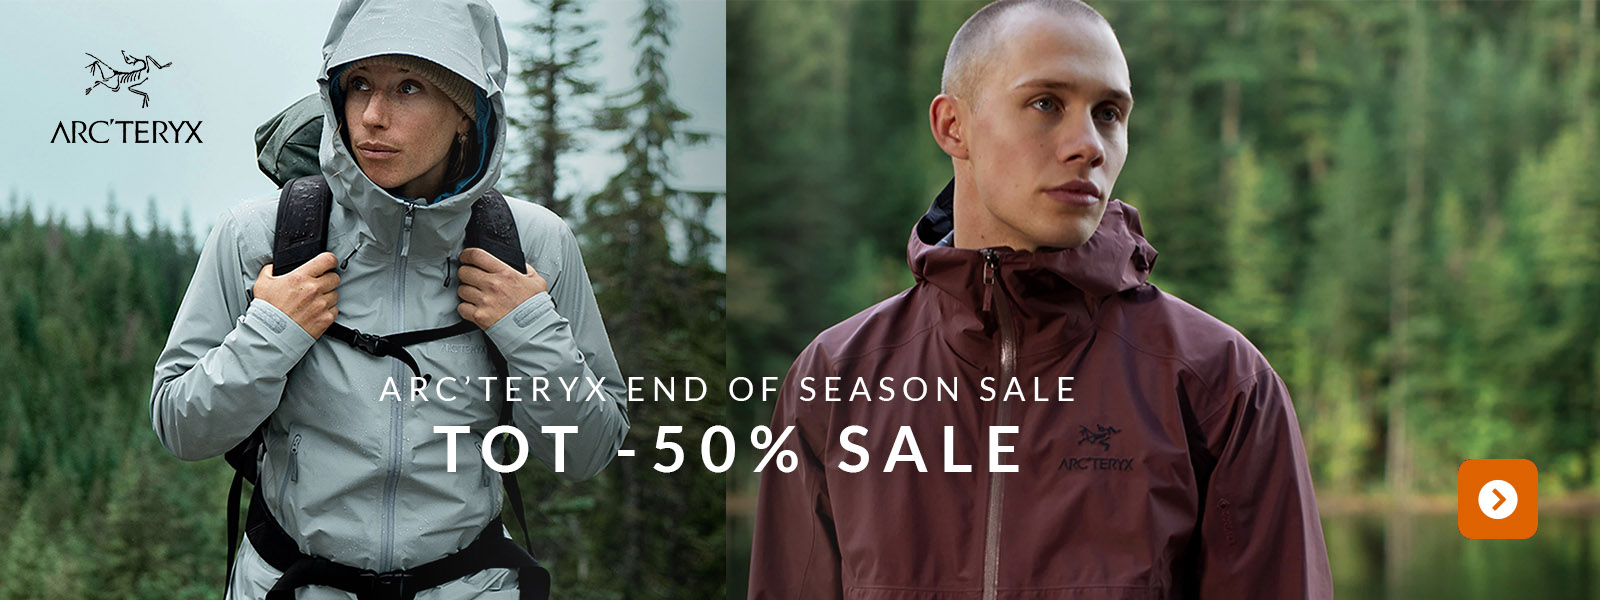 Arc'teryx End of Season Sale